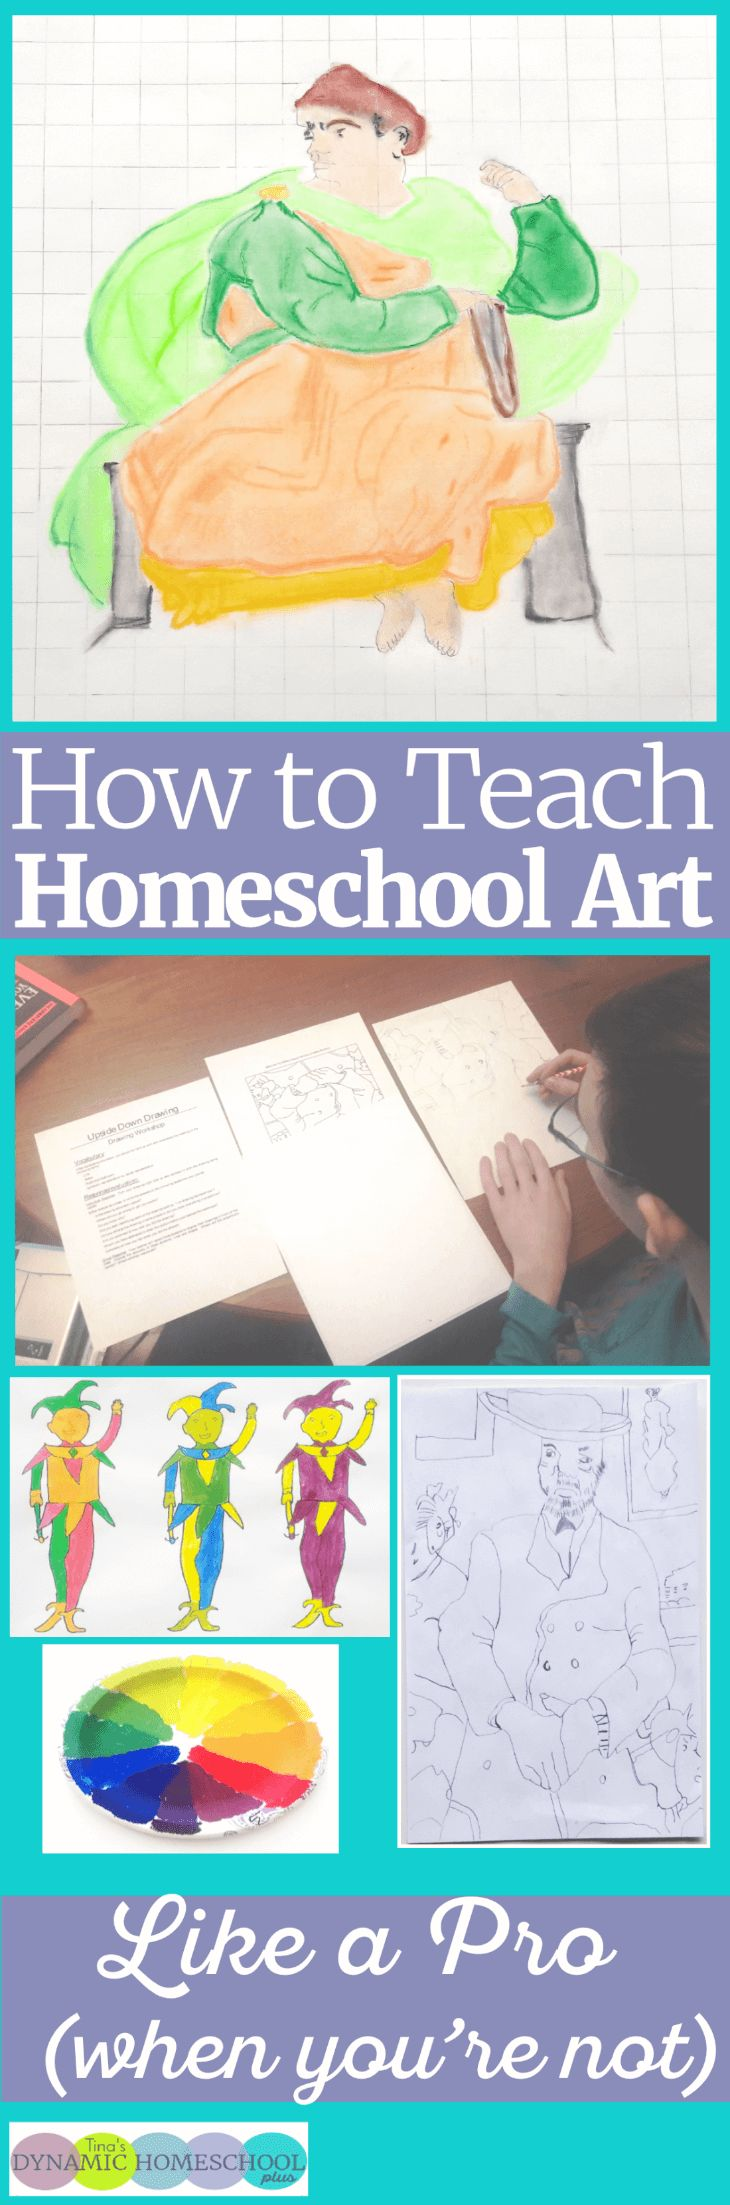 How To Teach Homeschool Art Like a Pro (When You're Not).Teaching homeschool art use to be a subject that intimidated me. I didn't give up trying to teach it because I feel so much emphasis is always give on academics and not enough time to power up a child's creativity. Look at easy it can be to teach homeschool art. Click here to read the tips! via @tinashomeschool